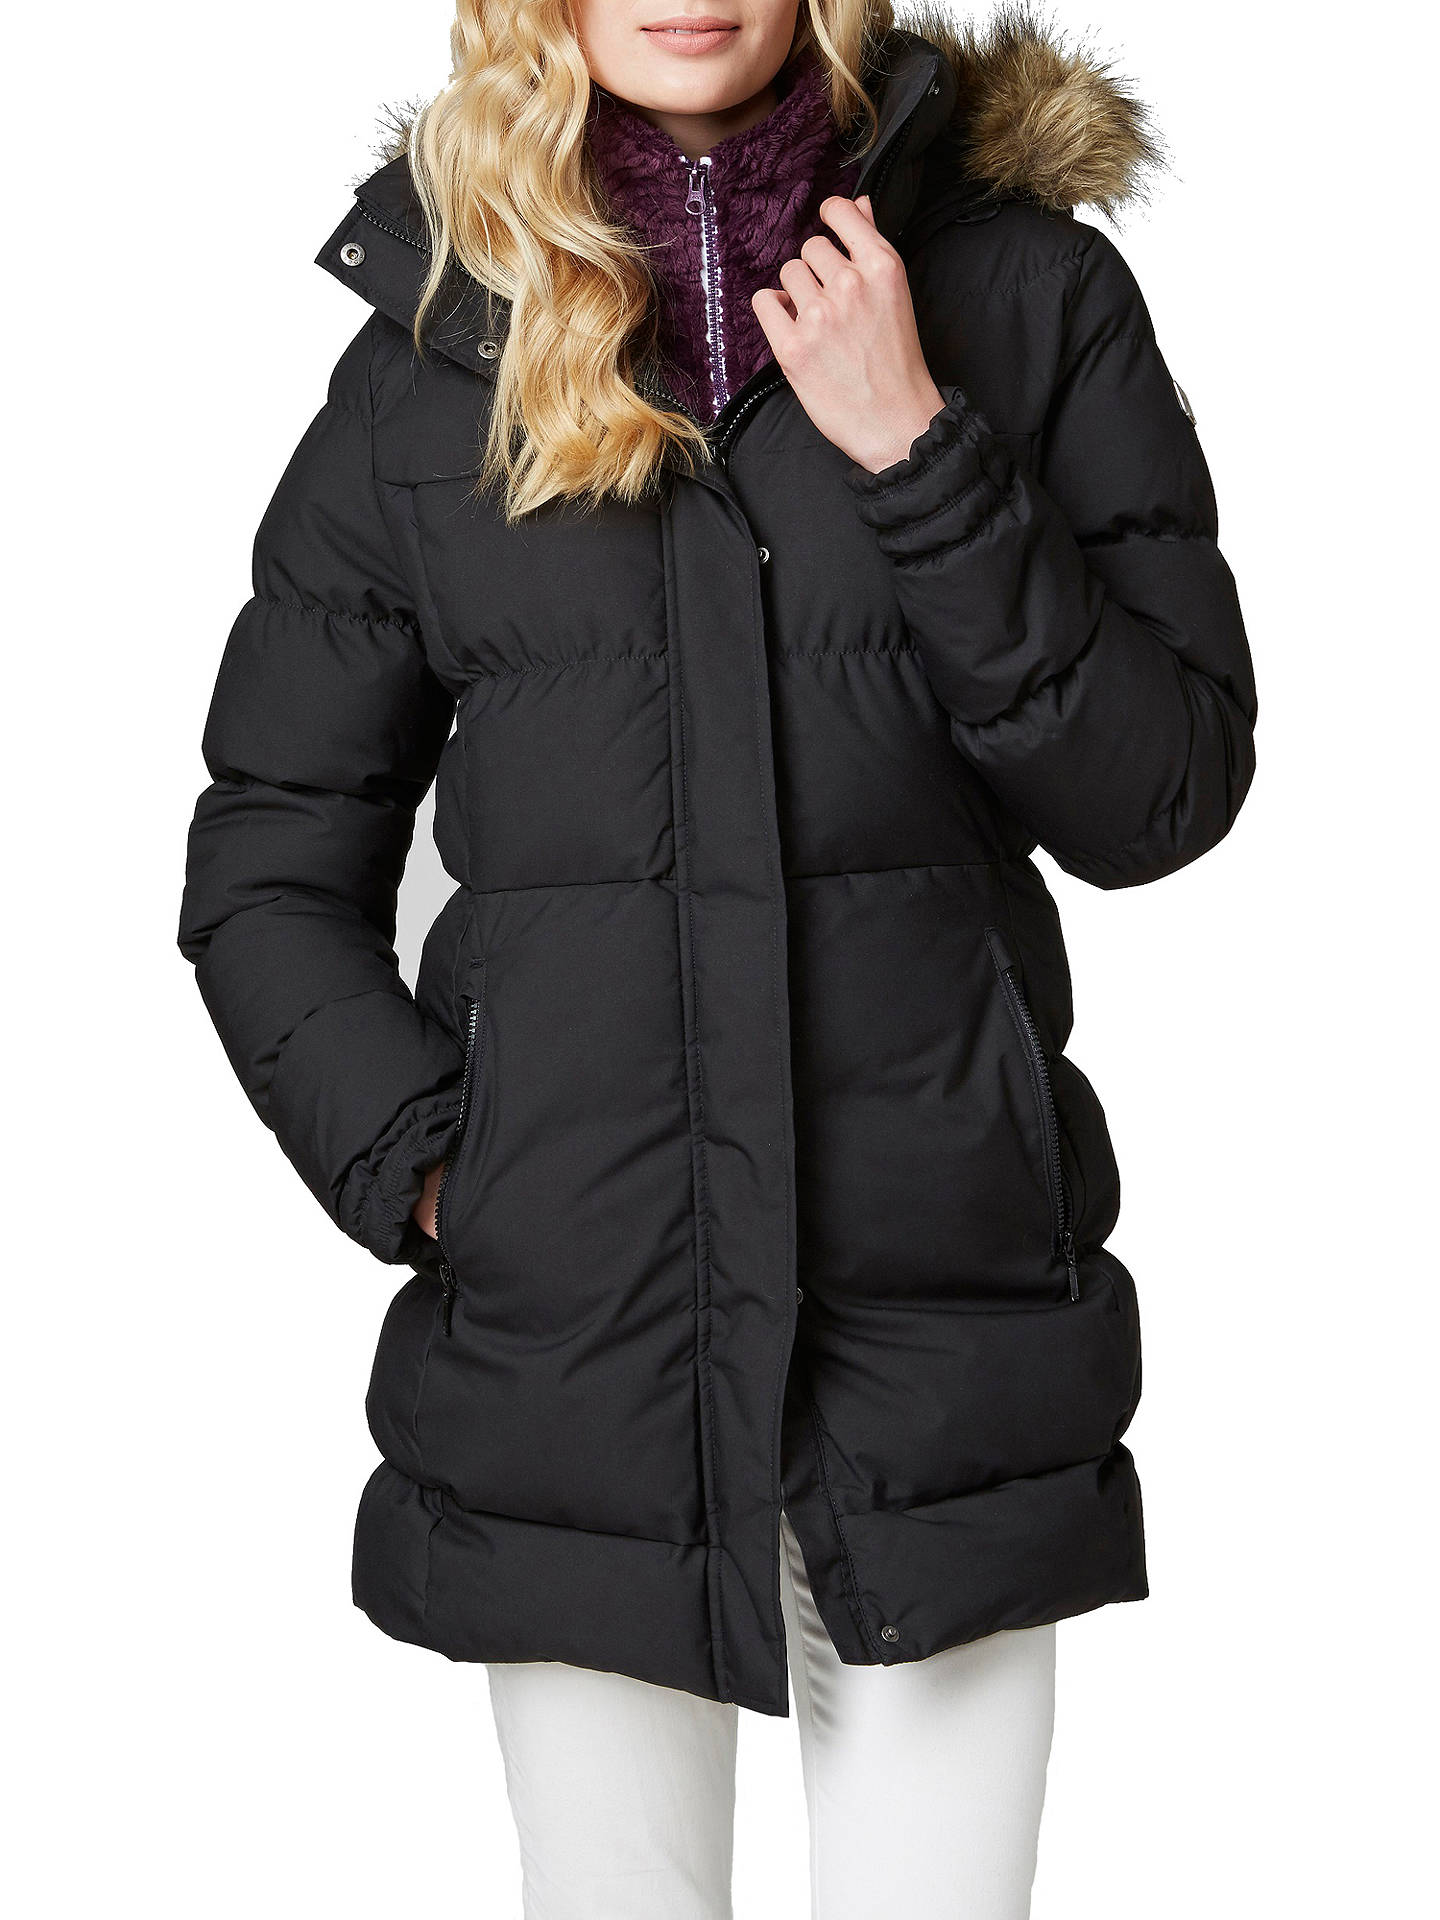 4de0167c83 Buy Helly Hansen Blume Puffy Women's Waterproof Parka Jacket, Black, S  Online at johnlewis ...